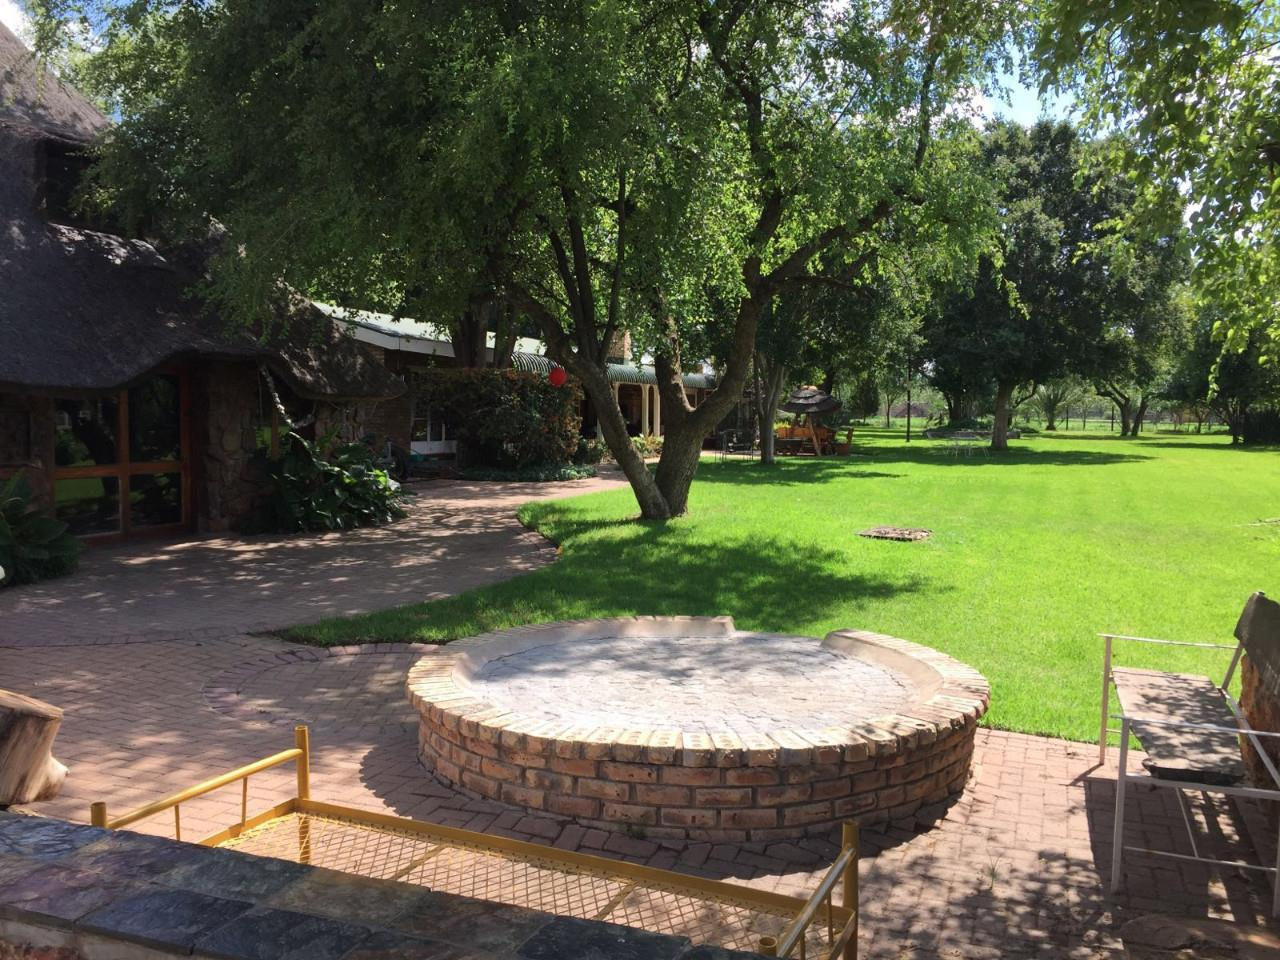 5 Bedroom House For Sale in Viljoenskroon Rural